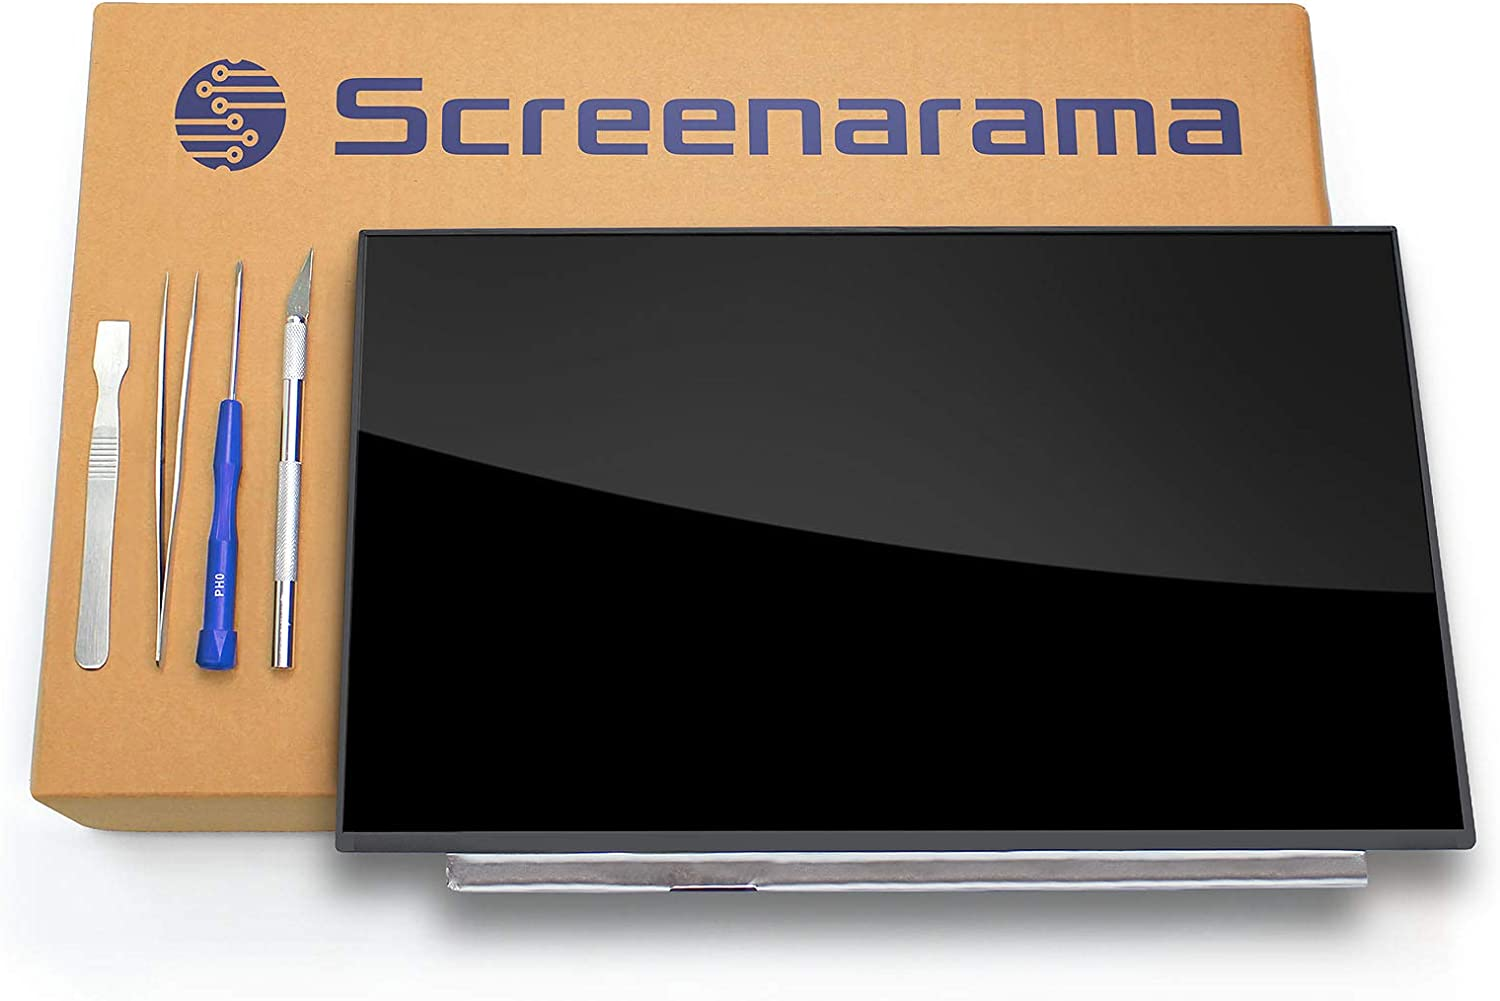 SCREENARAMA New Screen Replacement for HP Pavilion 15-CS0053CL (3TS79UA), HD 1366x768, OnCell Touch, LCD LED Display with Tools